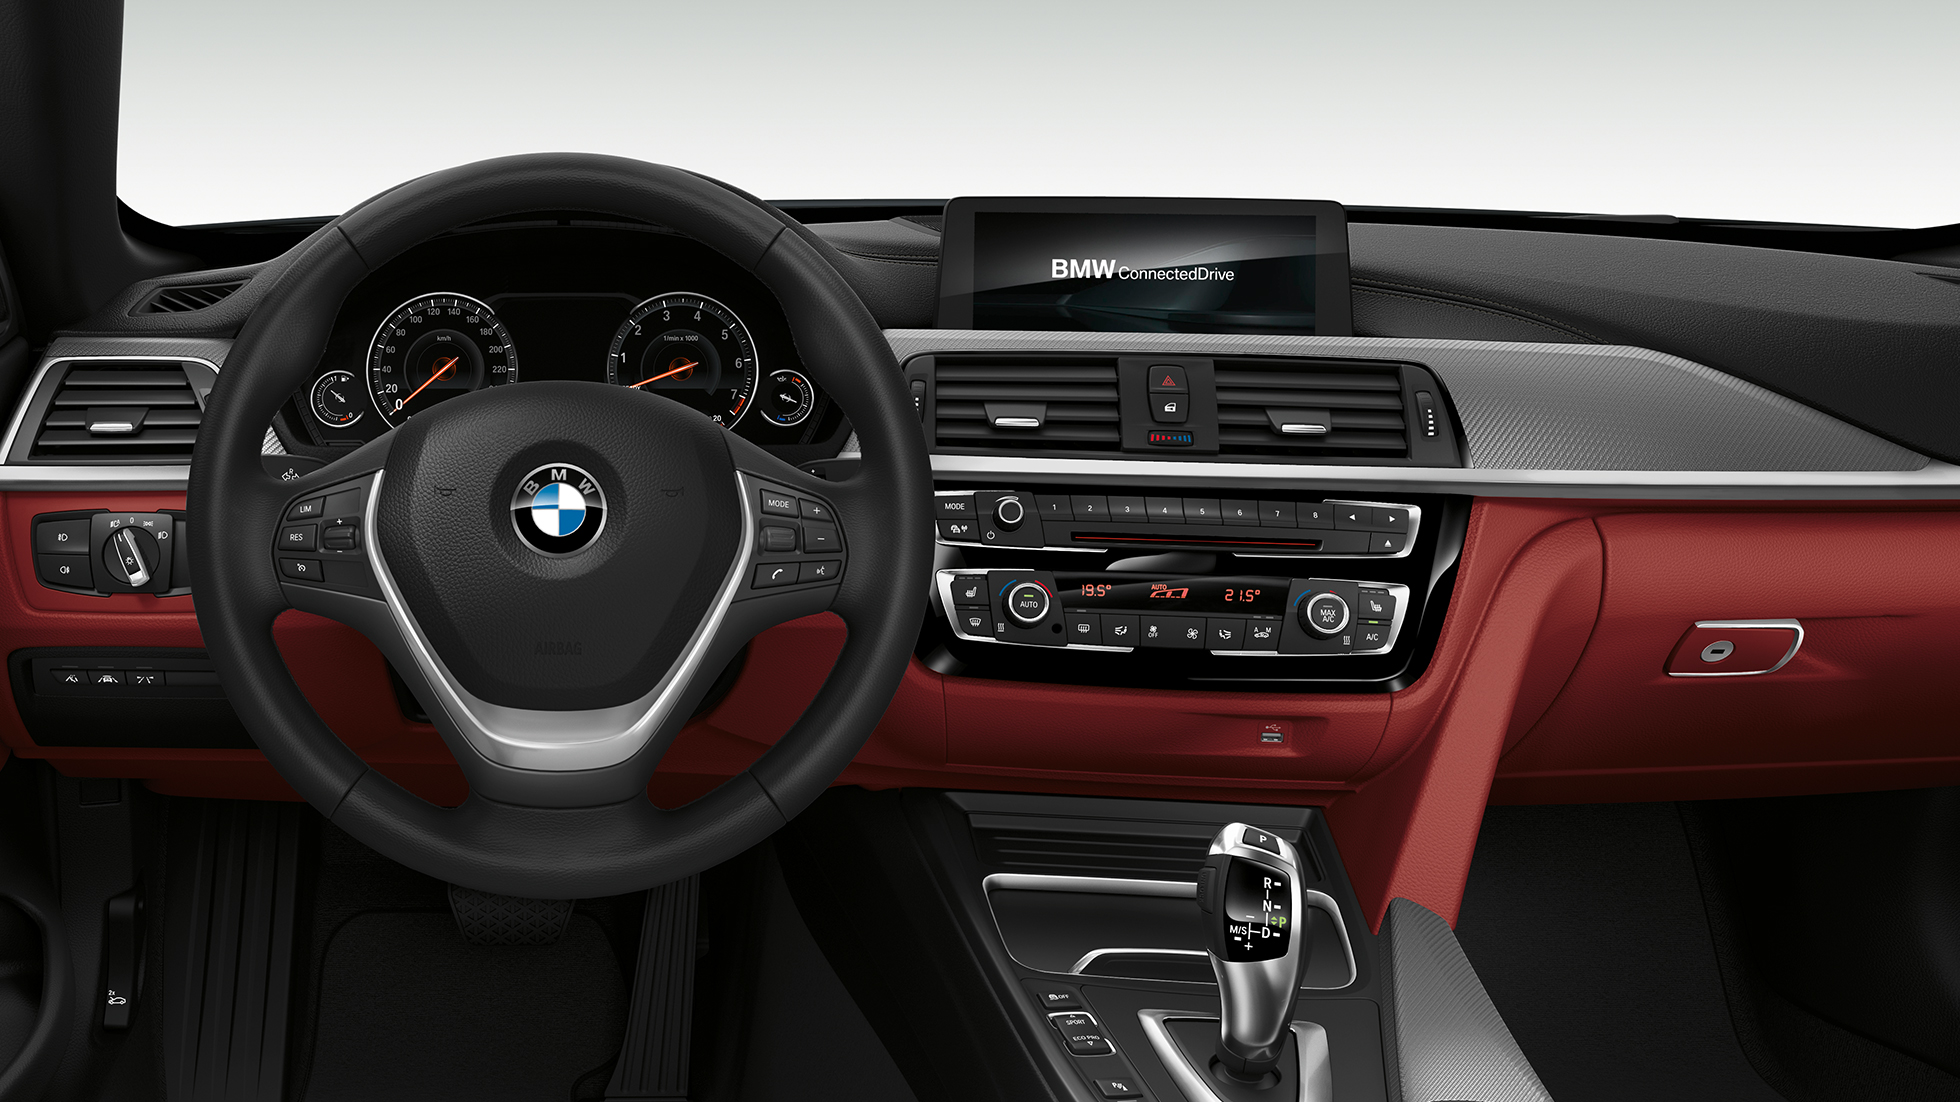 BMW 4 Series Convertible, Model Sport Line cockpit